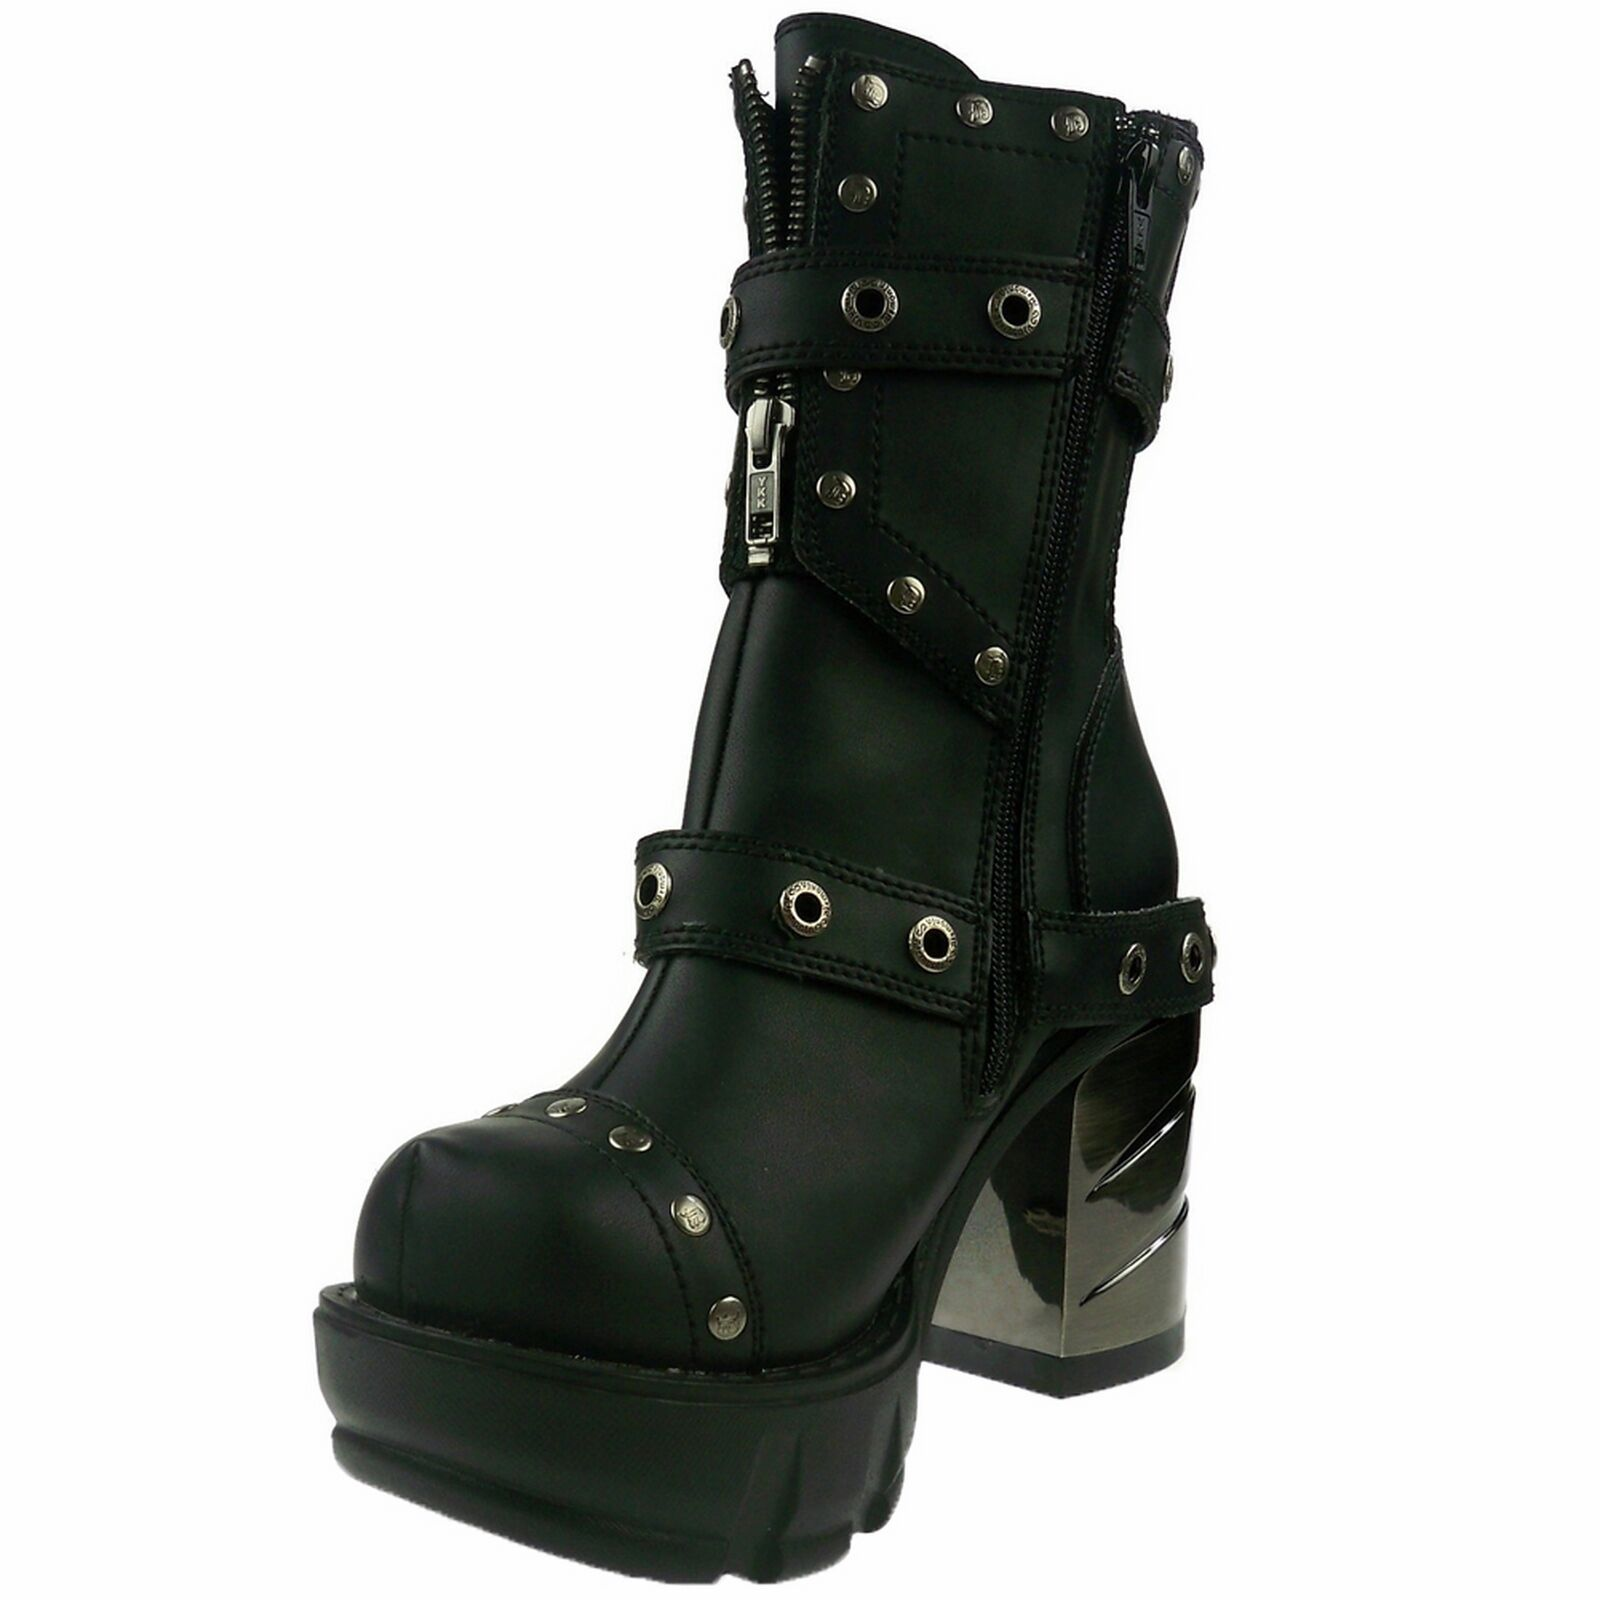 DEMONIA Gothic Womens Platform Studded Ankle Boot Rivet SINISTER-201 Black PU